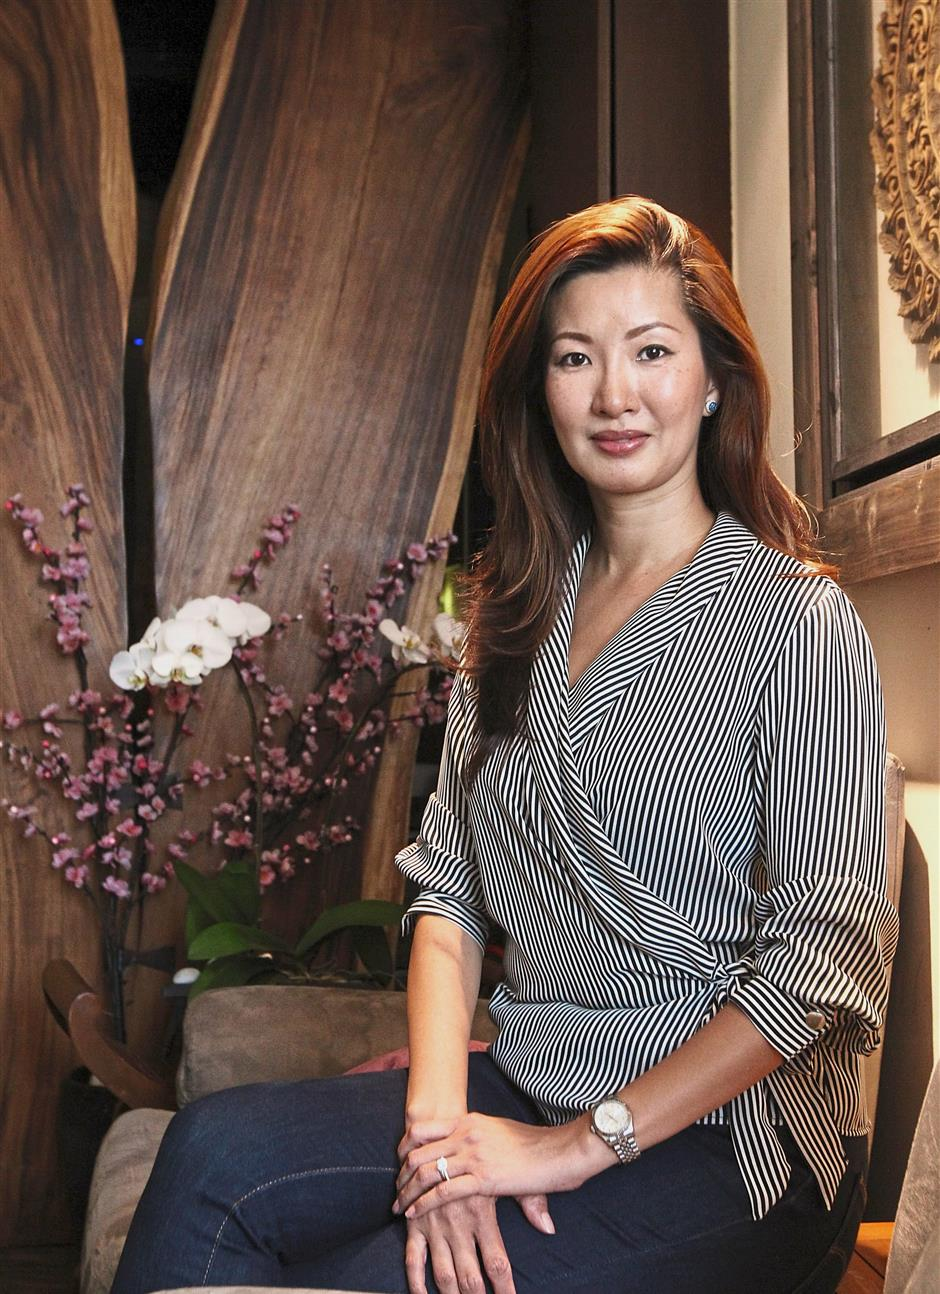 Where opportunities lie: Pang is eyeing potential in under-represented markets in need of good spa and wellness centres.